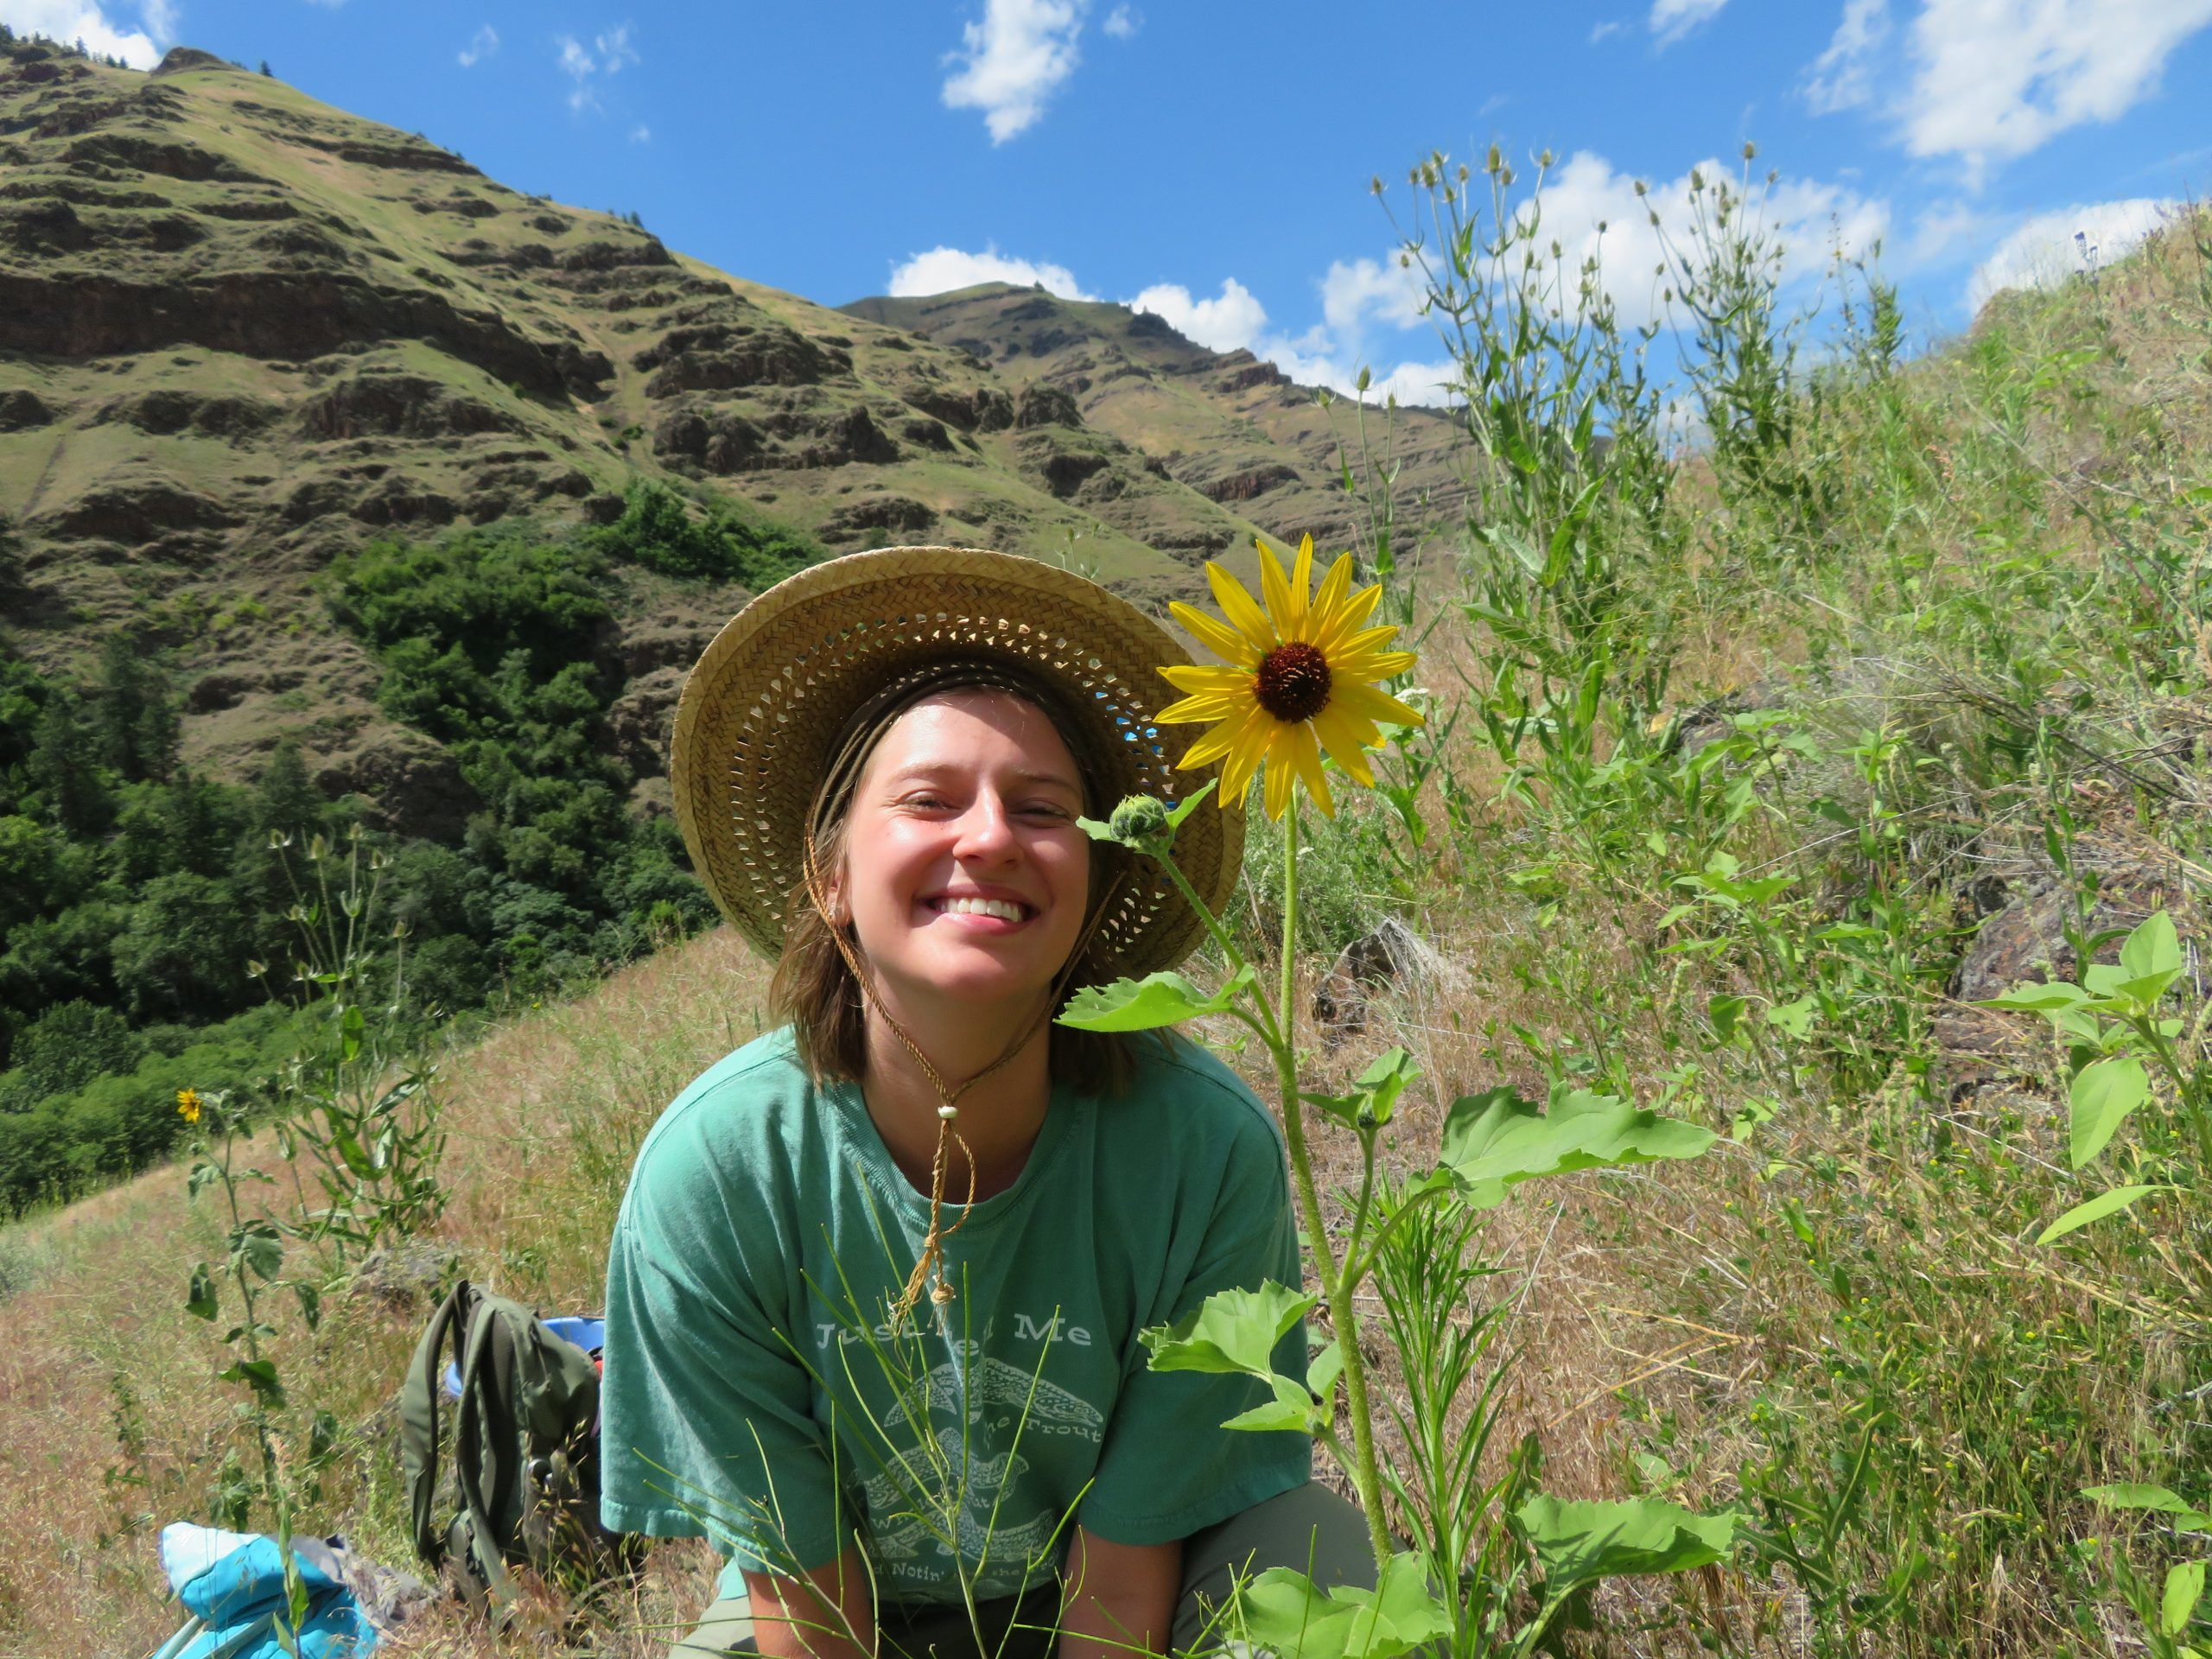 Happy volunteer in the nature in Oregon